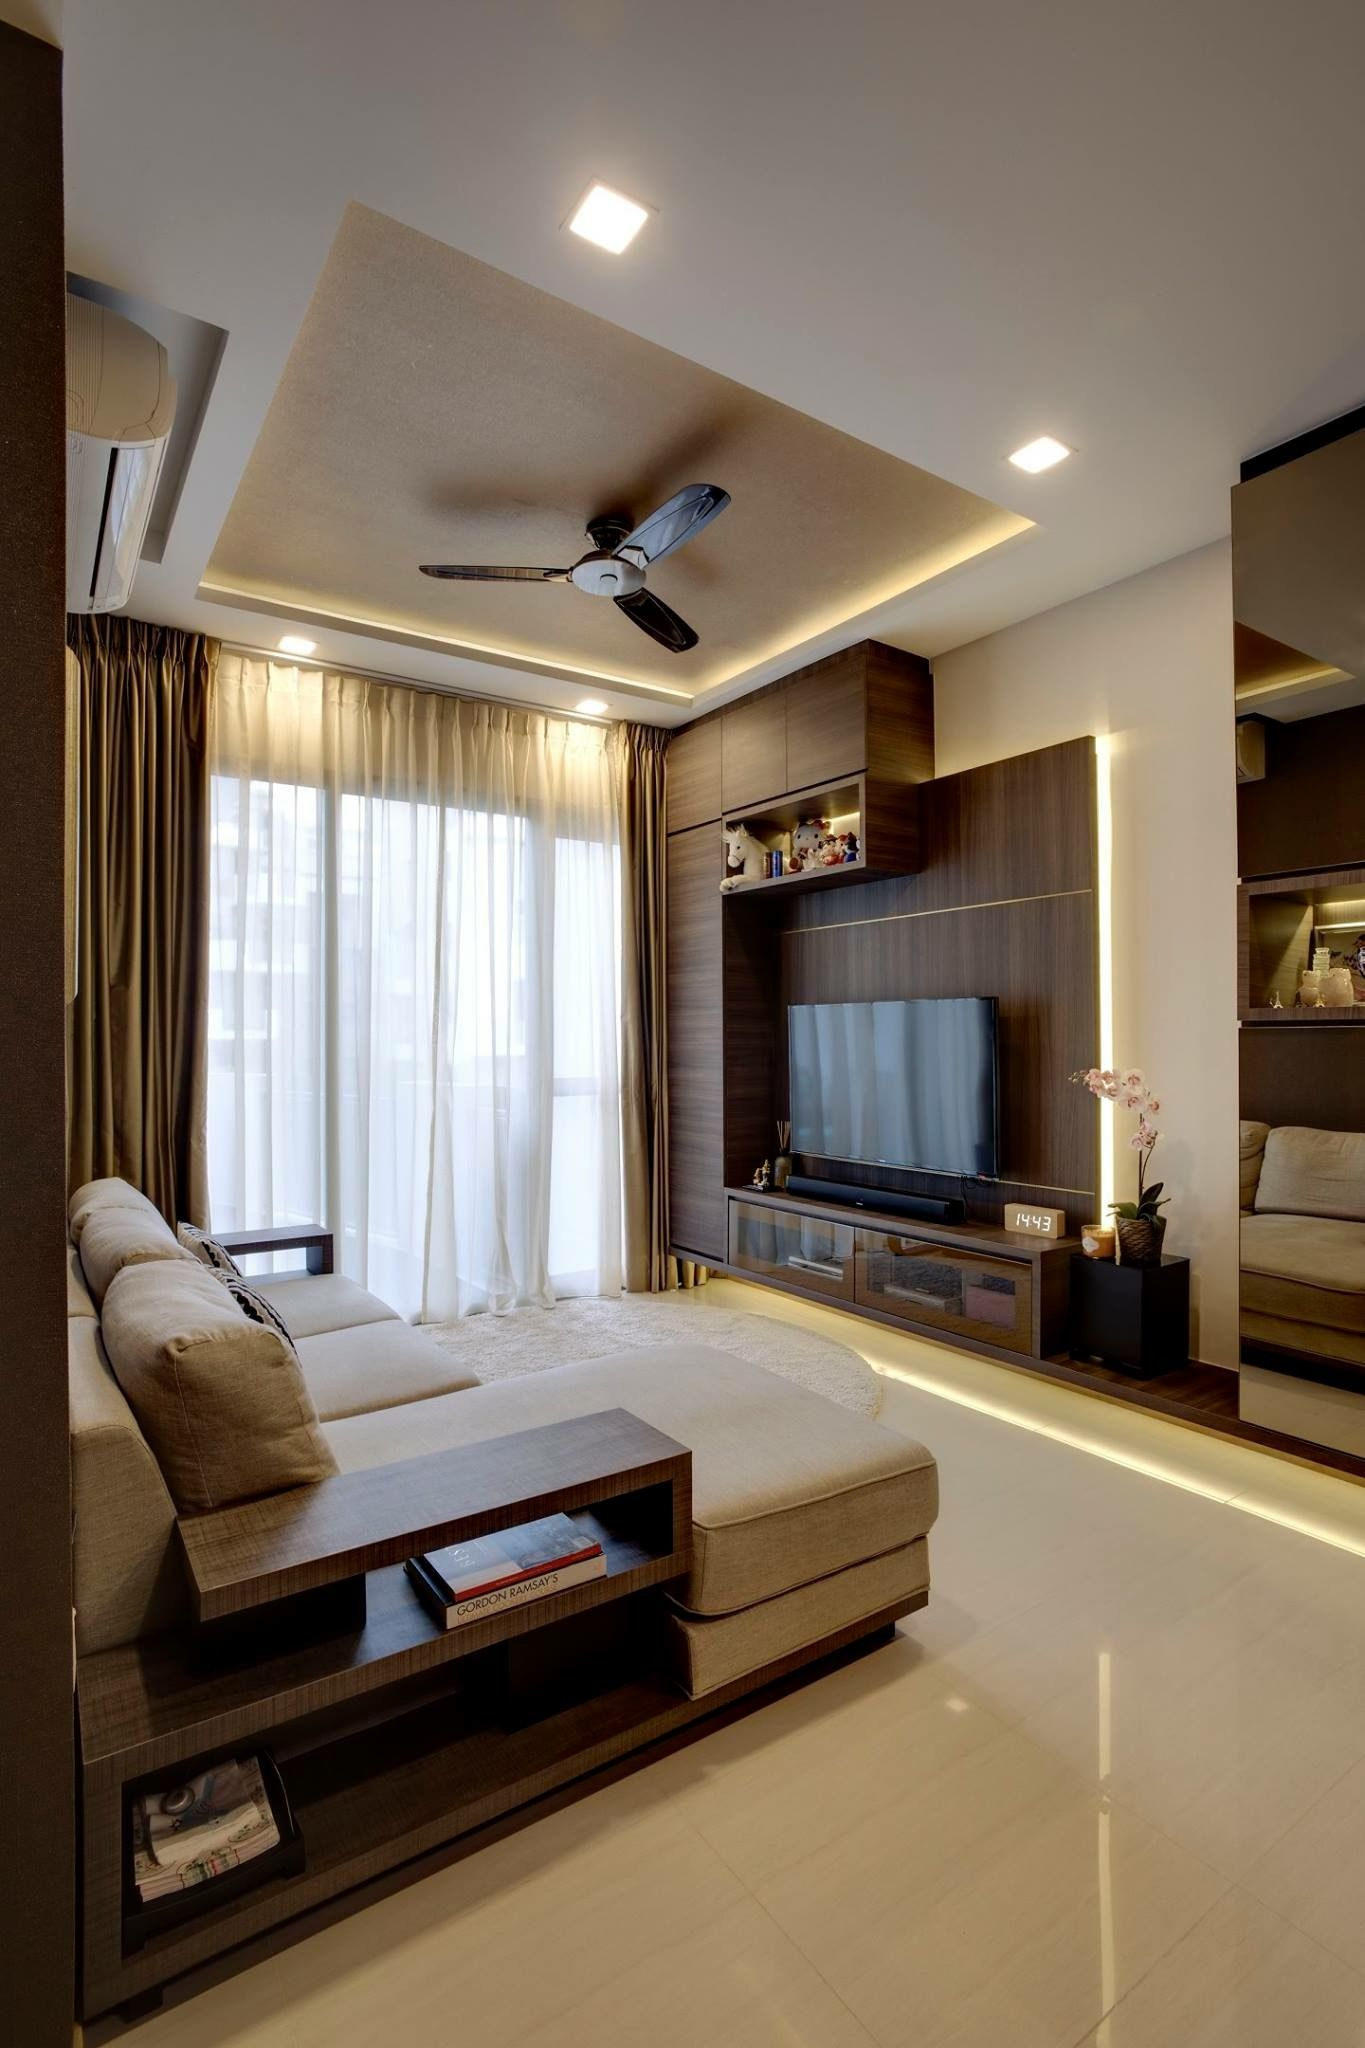 55 Beautiful Minimalist Living Room Ideas For Your Dream Home In 2020 Condominium Interior Condo Interior Condo Interior Design #sample #of #living #room #designs